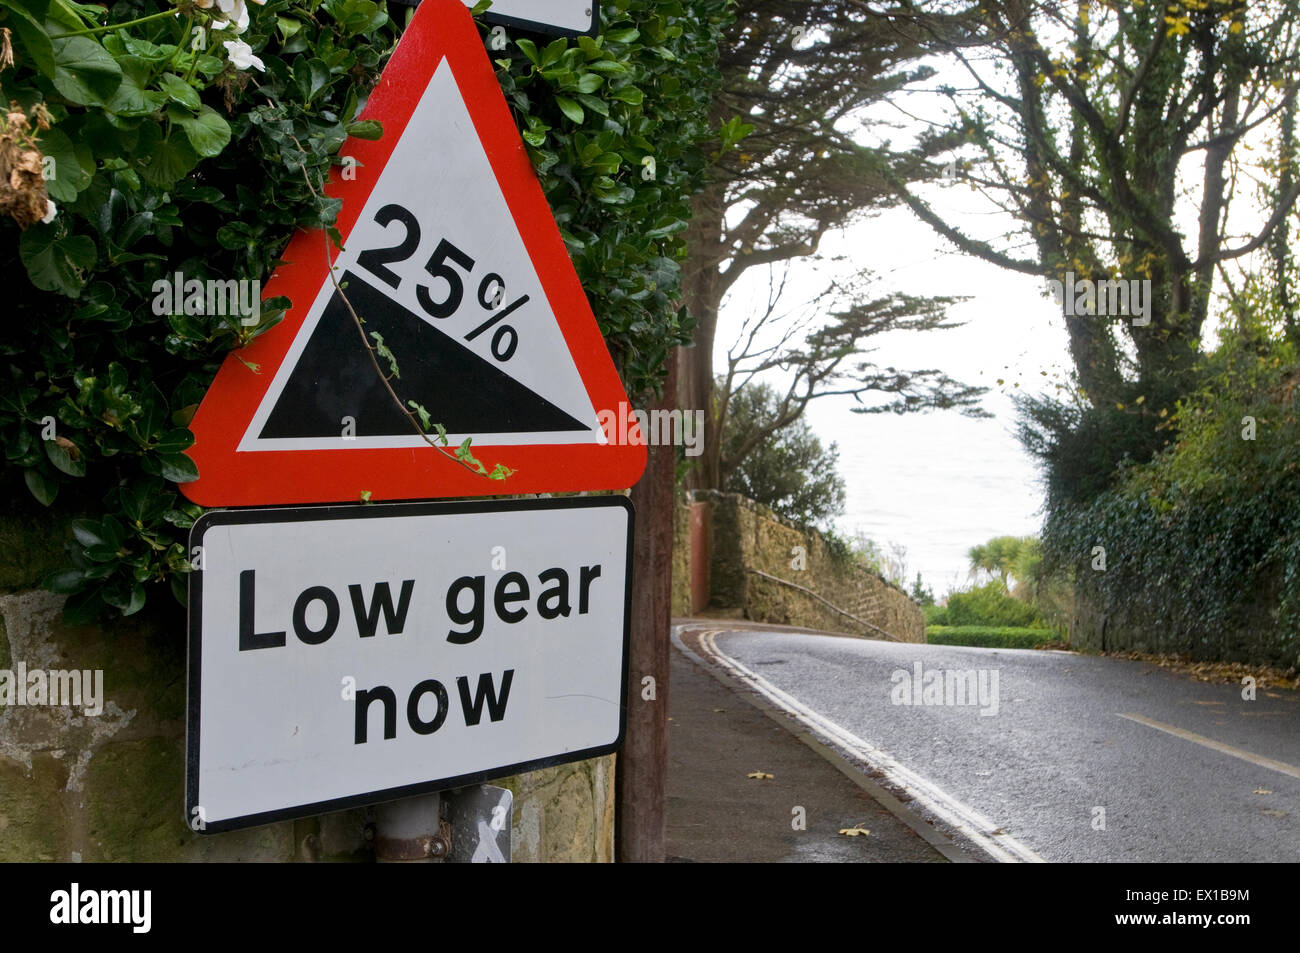 Traffic sign 25% steep hill downwards and low gear now text, Isle of wight,  England UK Europe - Stock Image